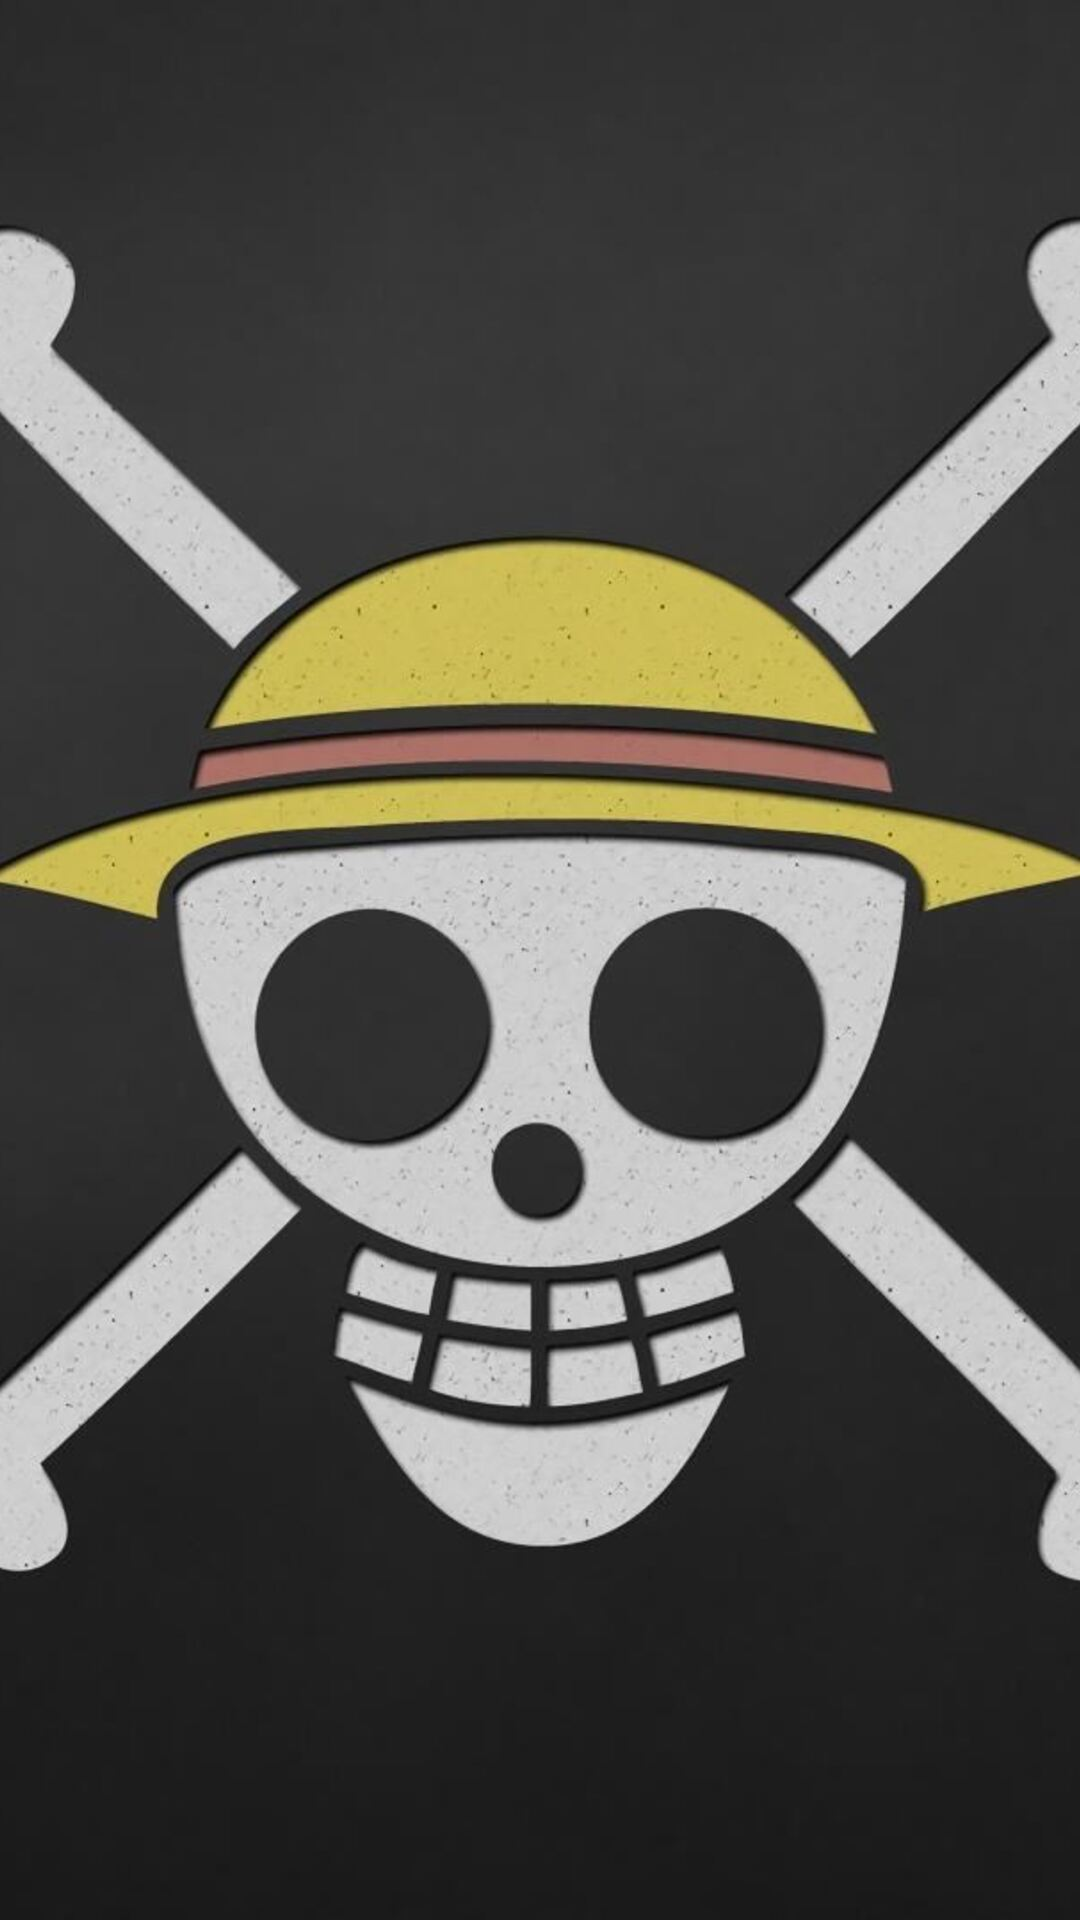 1080x1920 One Piece Anime Skull Iphone 7 6s 6 Plus Pixel Xl One